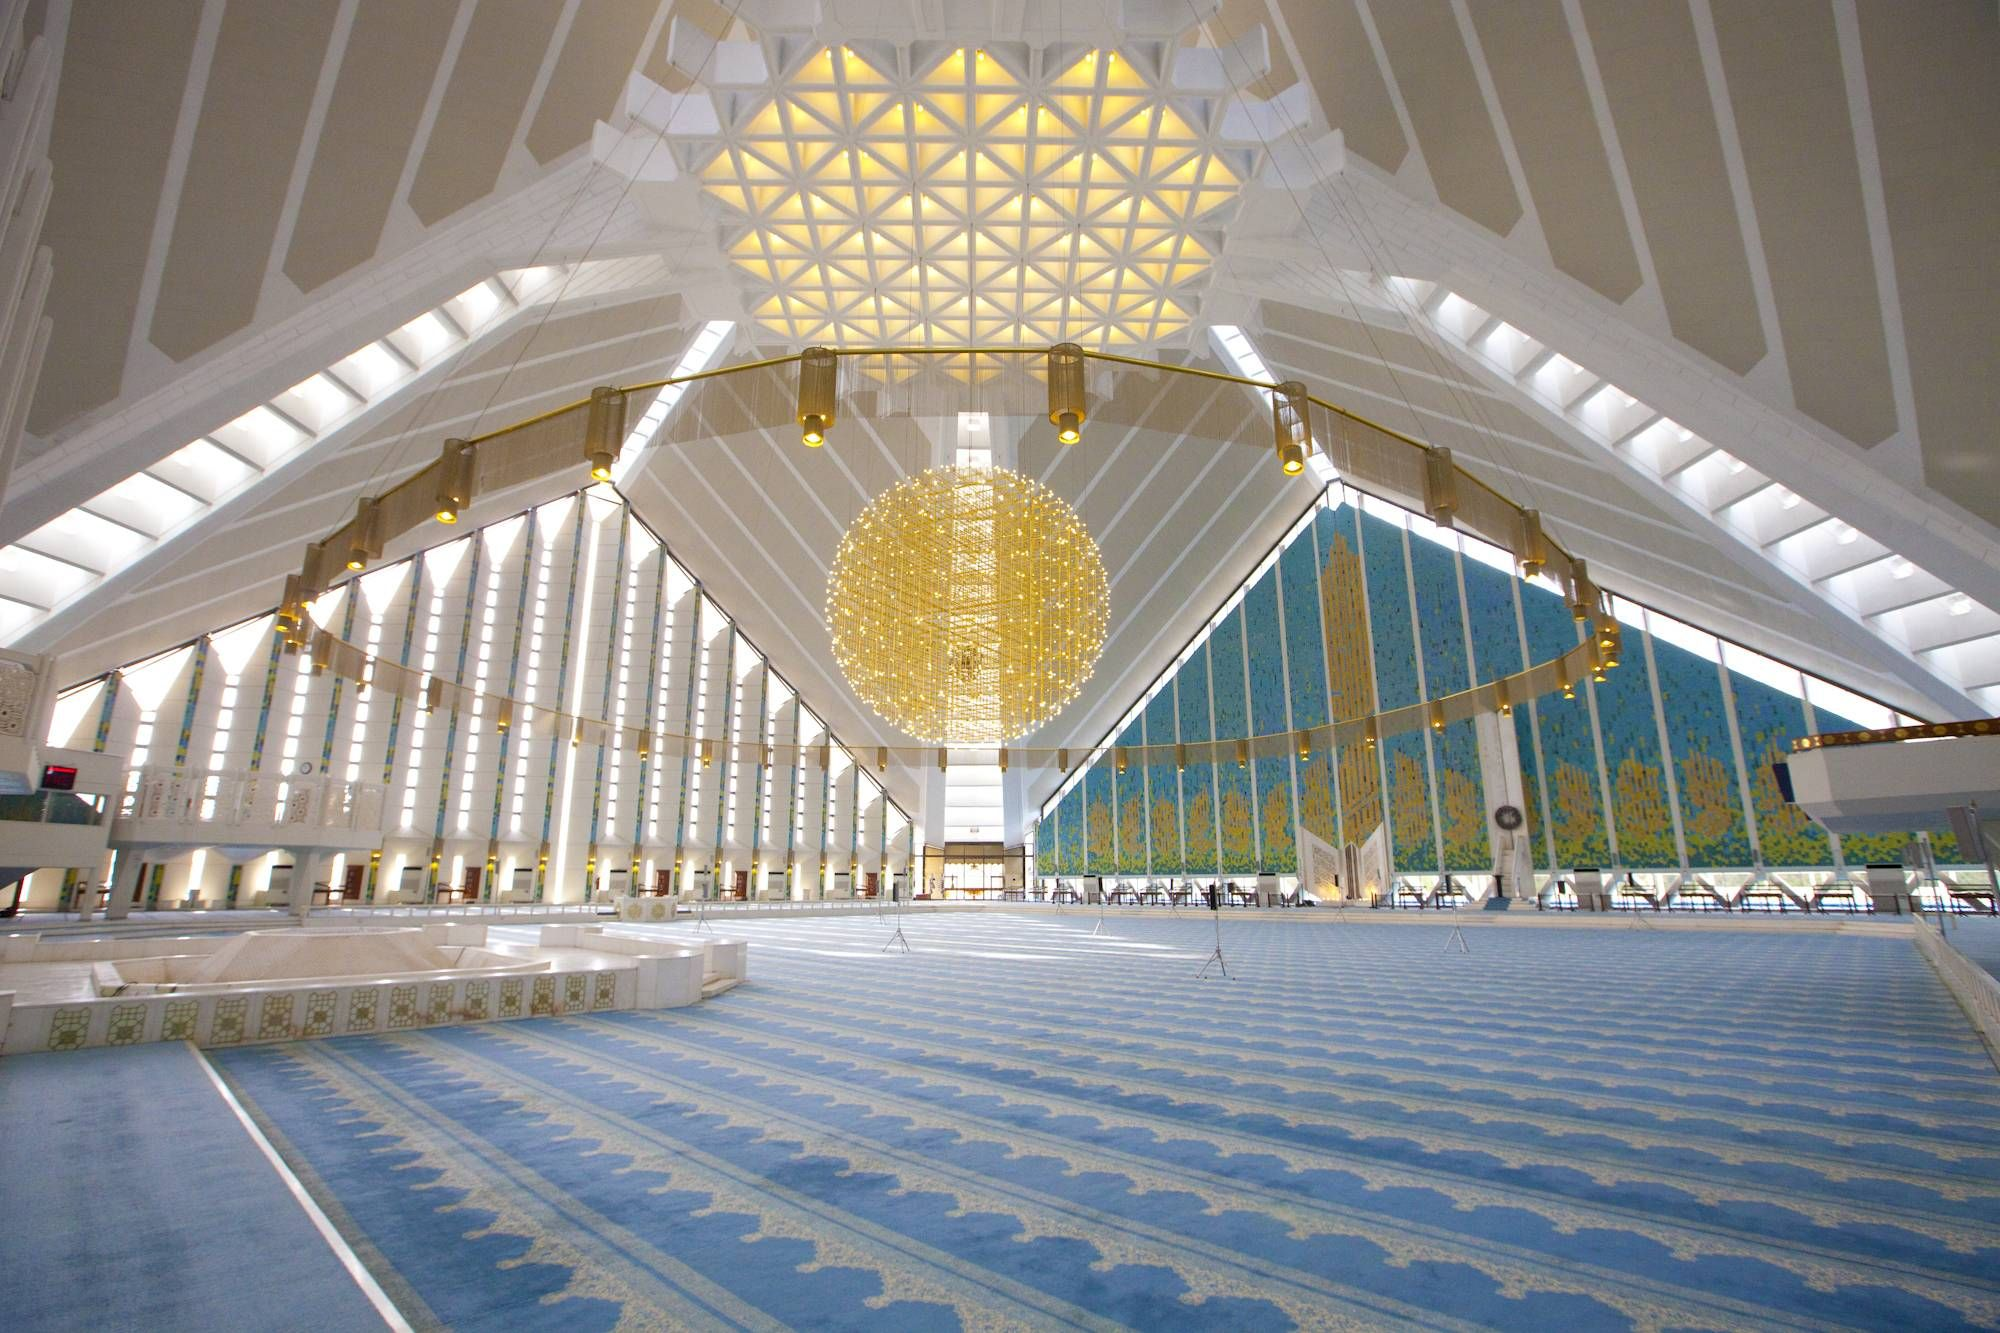 Interior view of the Faisal Mosque Islamabad Pakistan [2000x1333] via Classy Bro